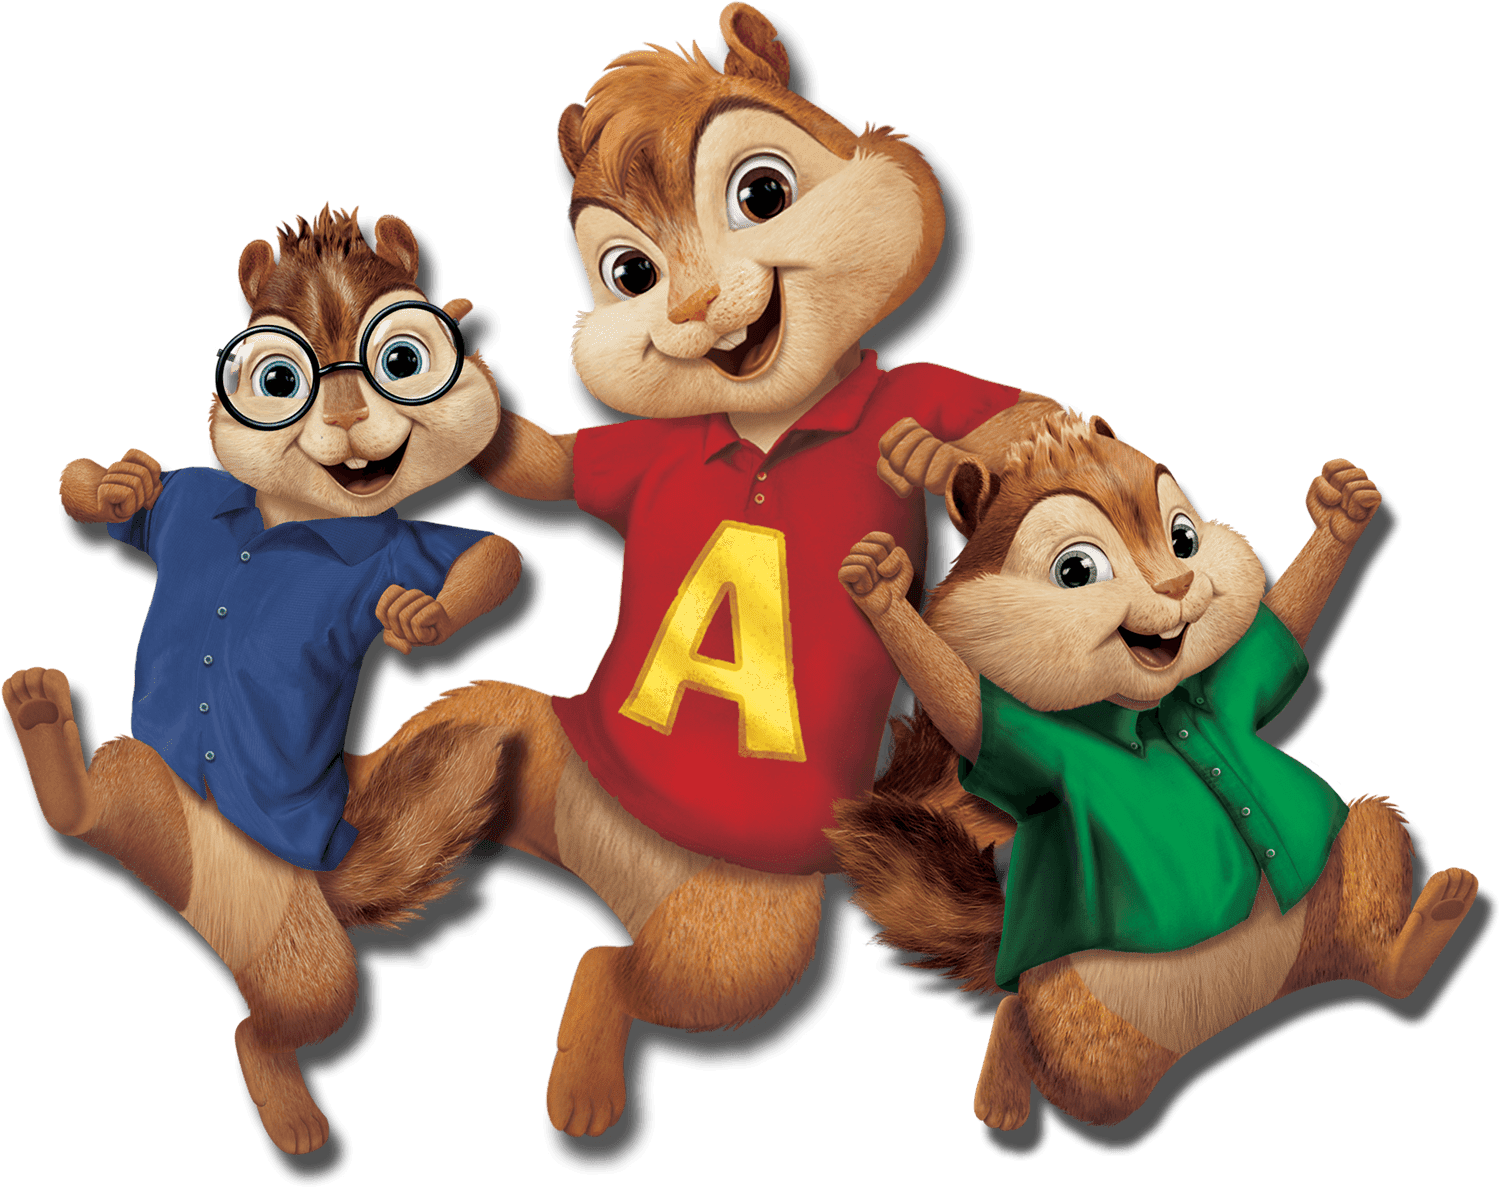 alvin and the chipmunks-#24